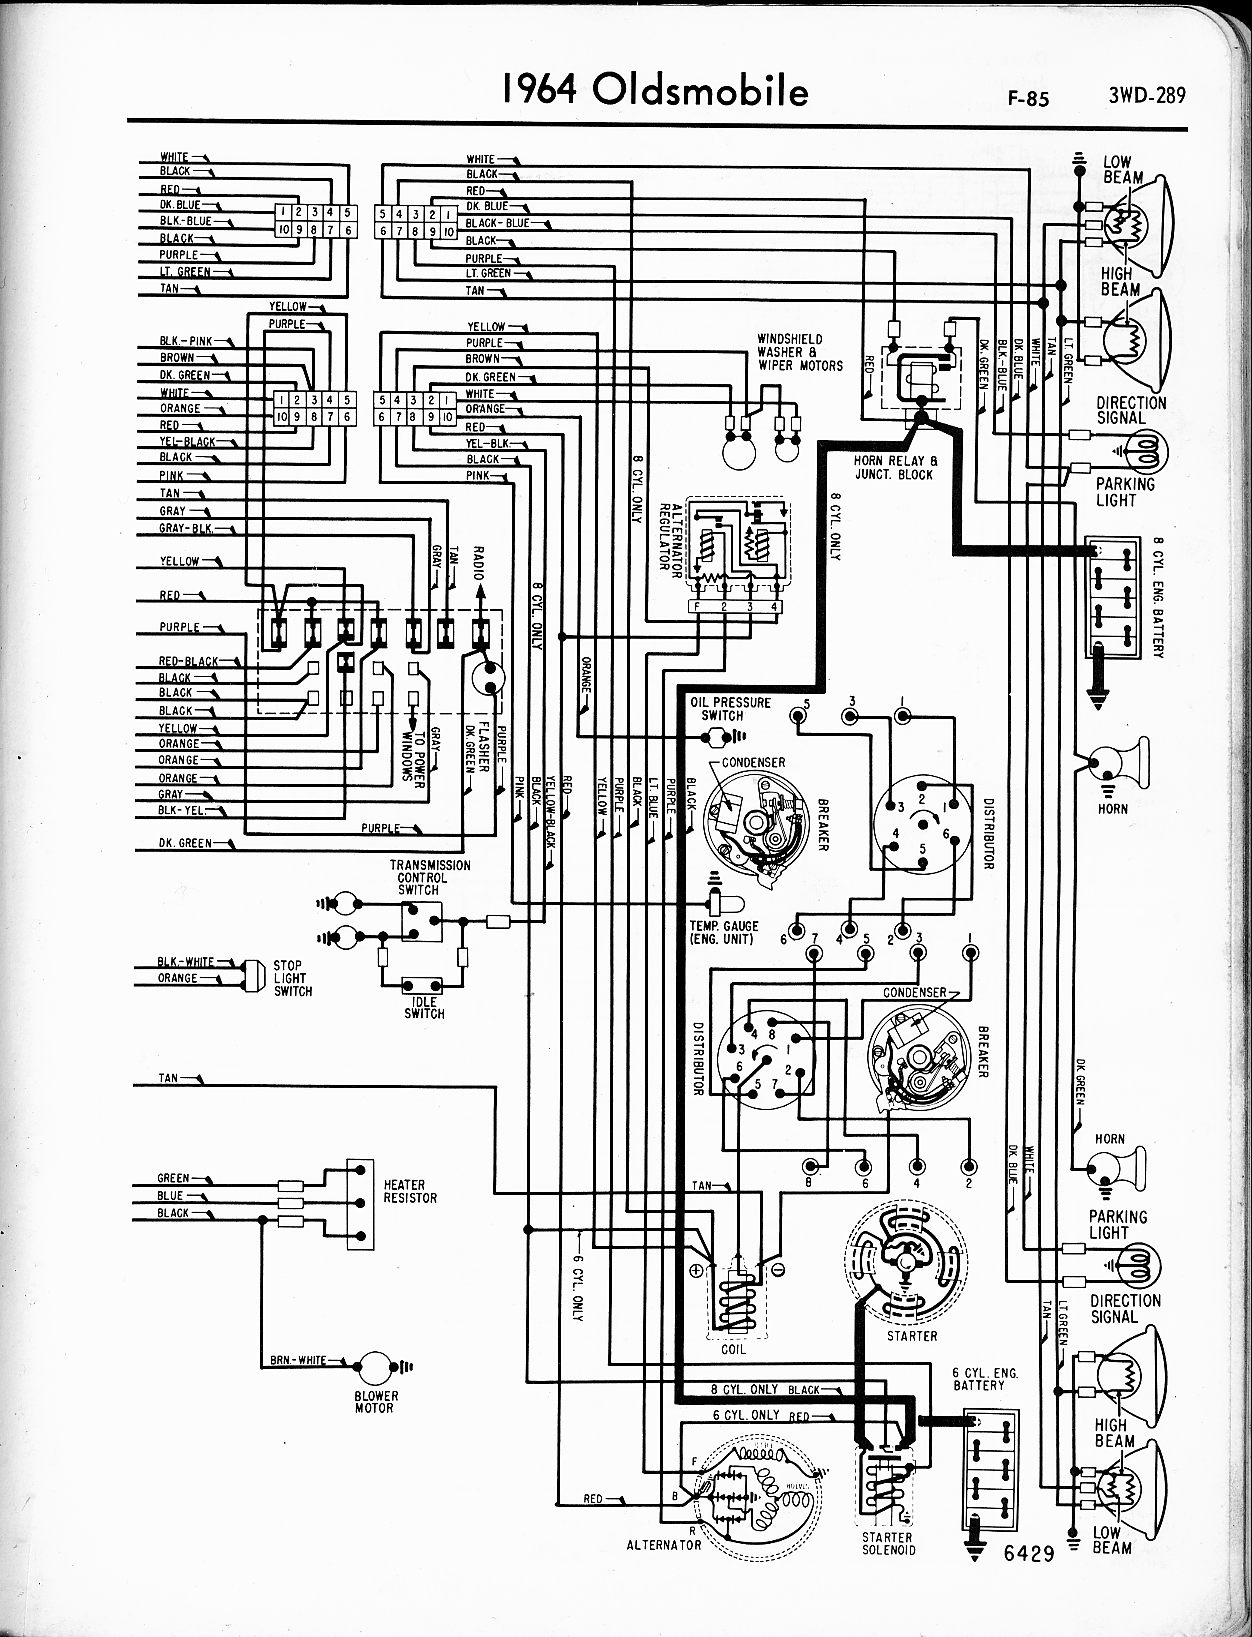 Town Car Wiring Diagram As Well Oldsmobile Delta 88 Wiring Diagram